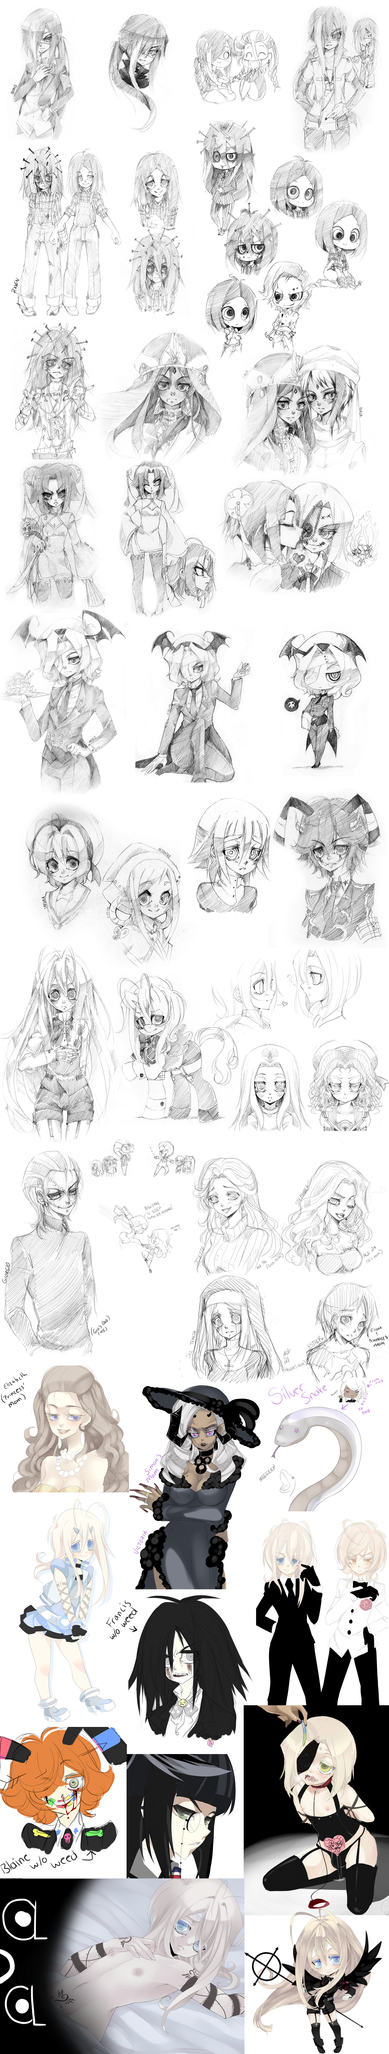 Sketch Dump 7 by TerraTerrific